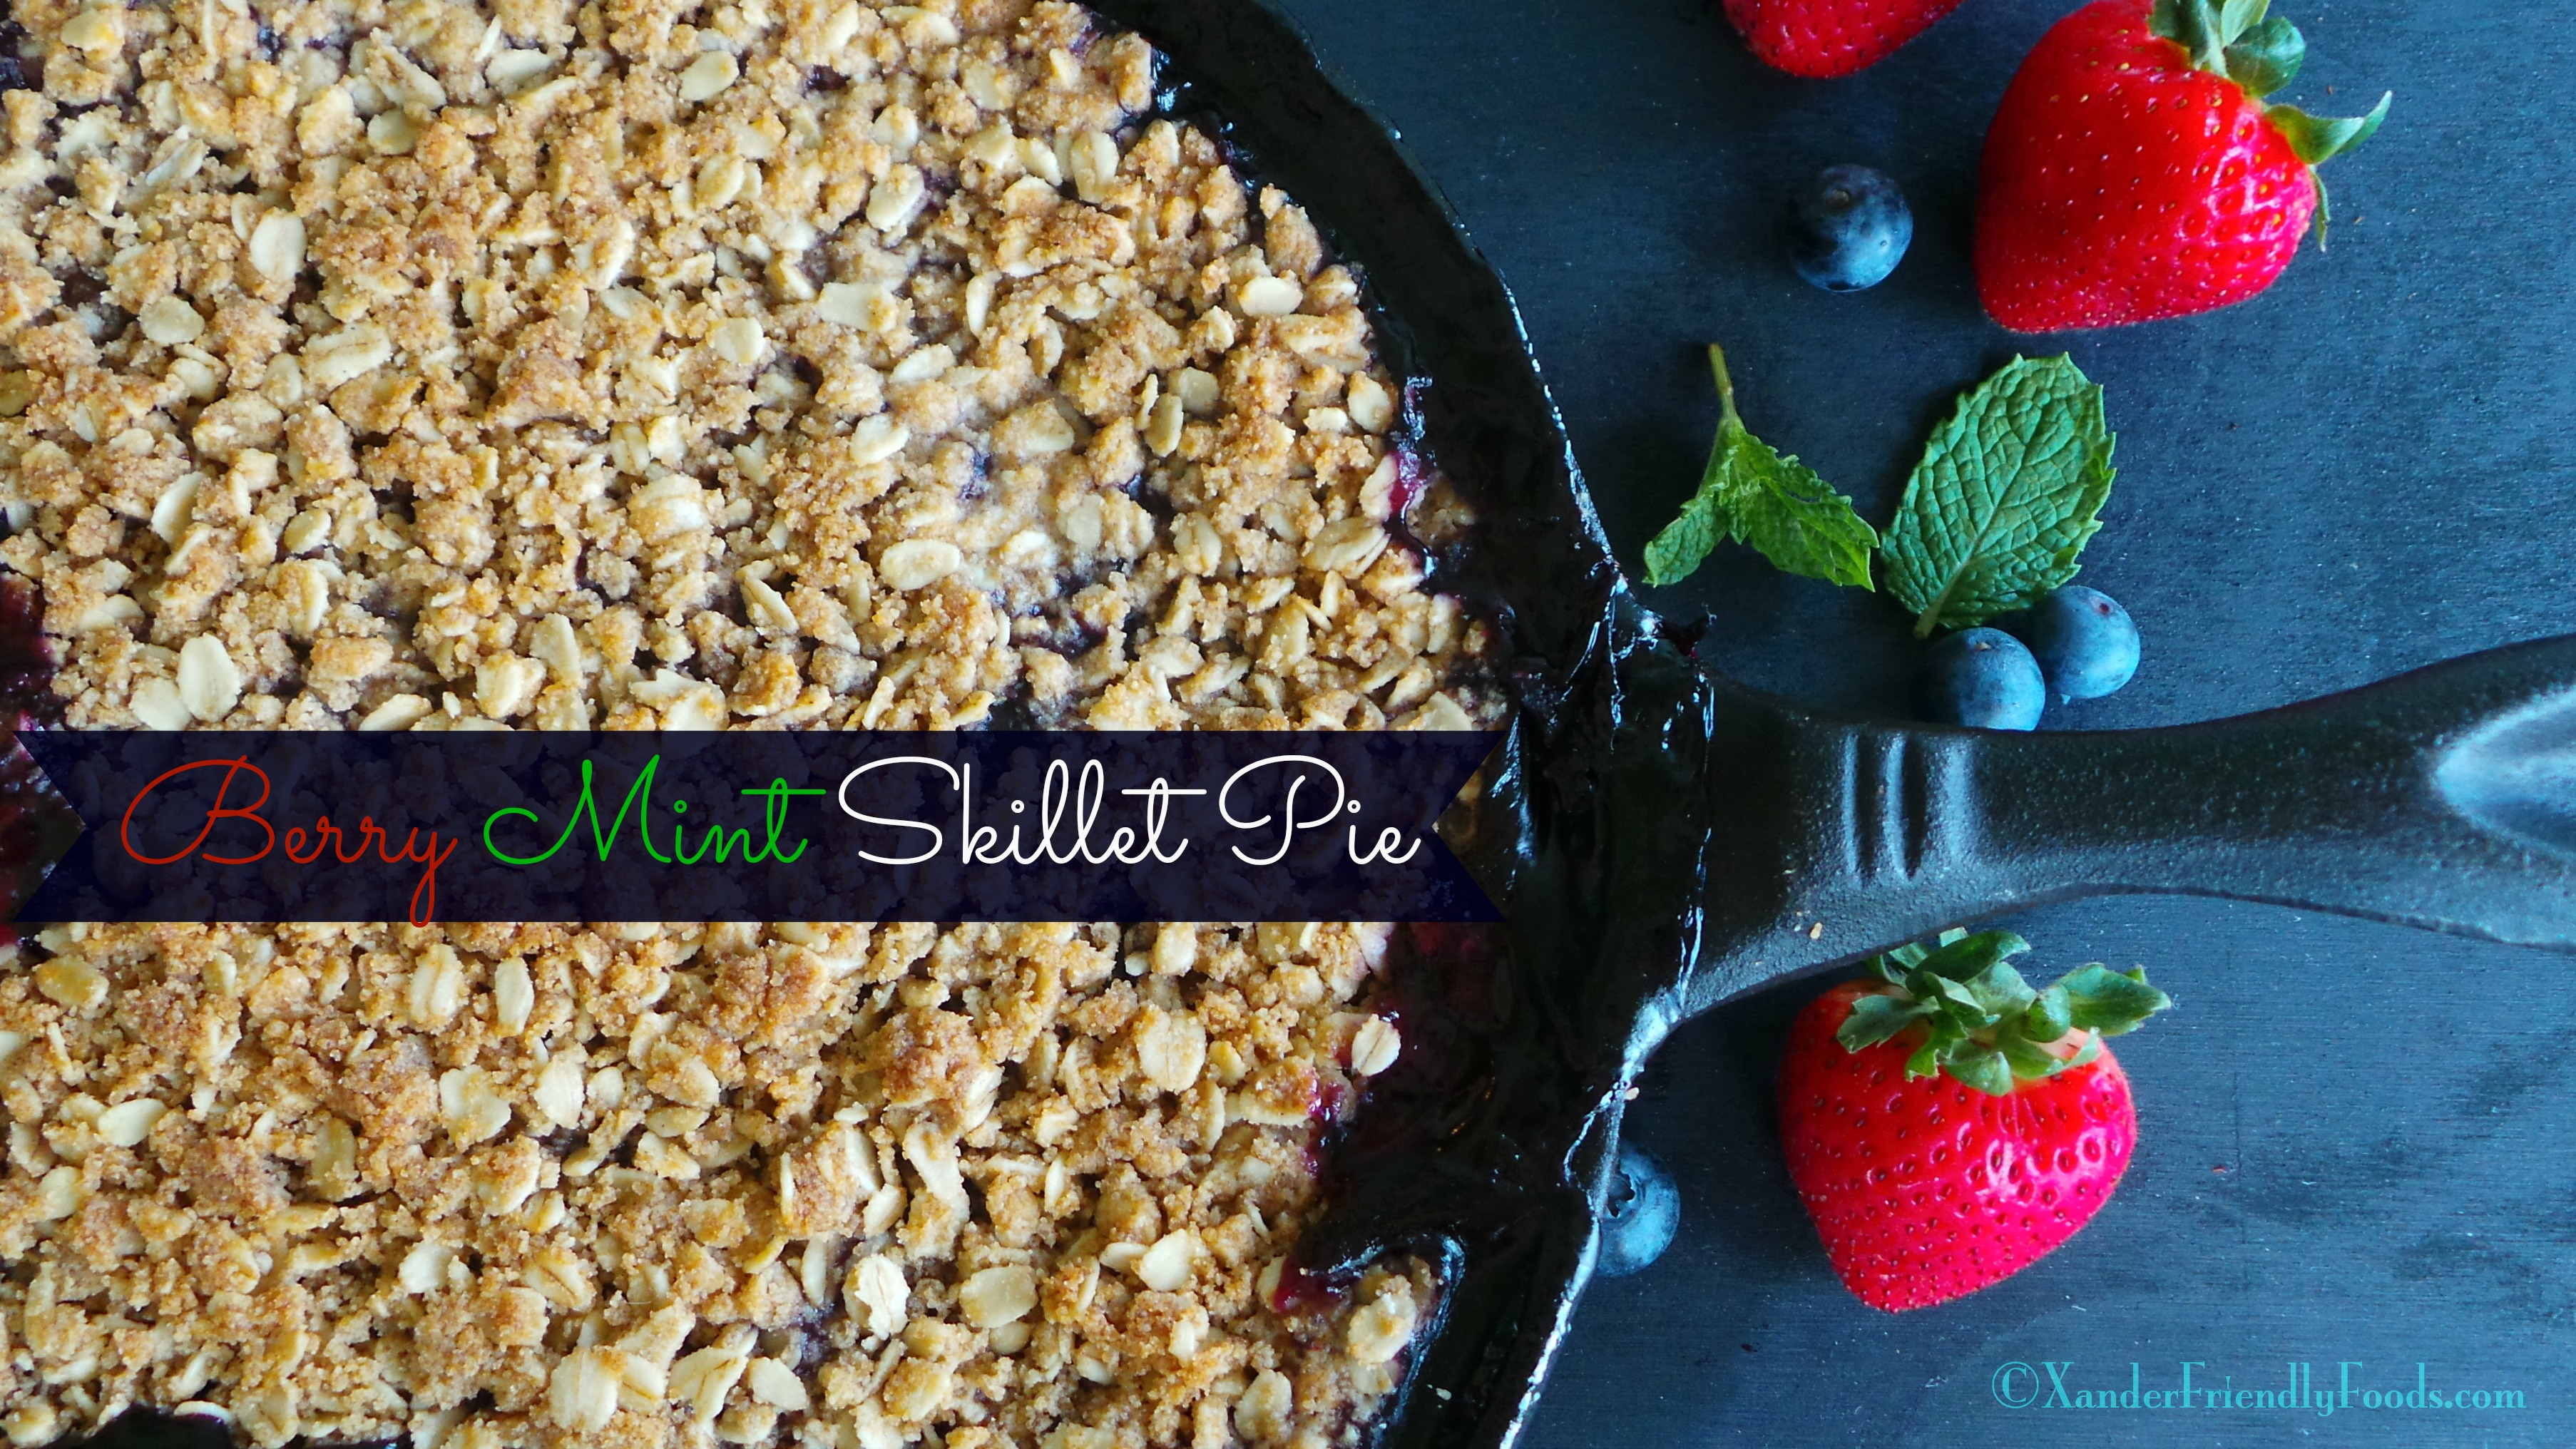 Warm berries and mint are a delightful combination in this Skillet Pie